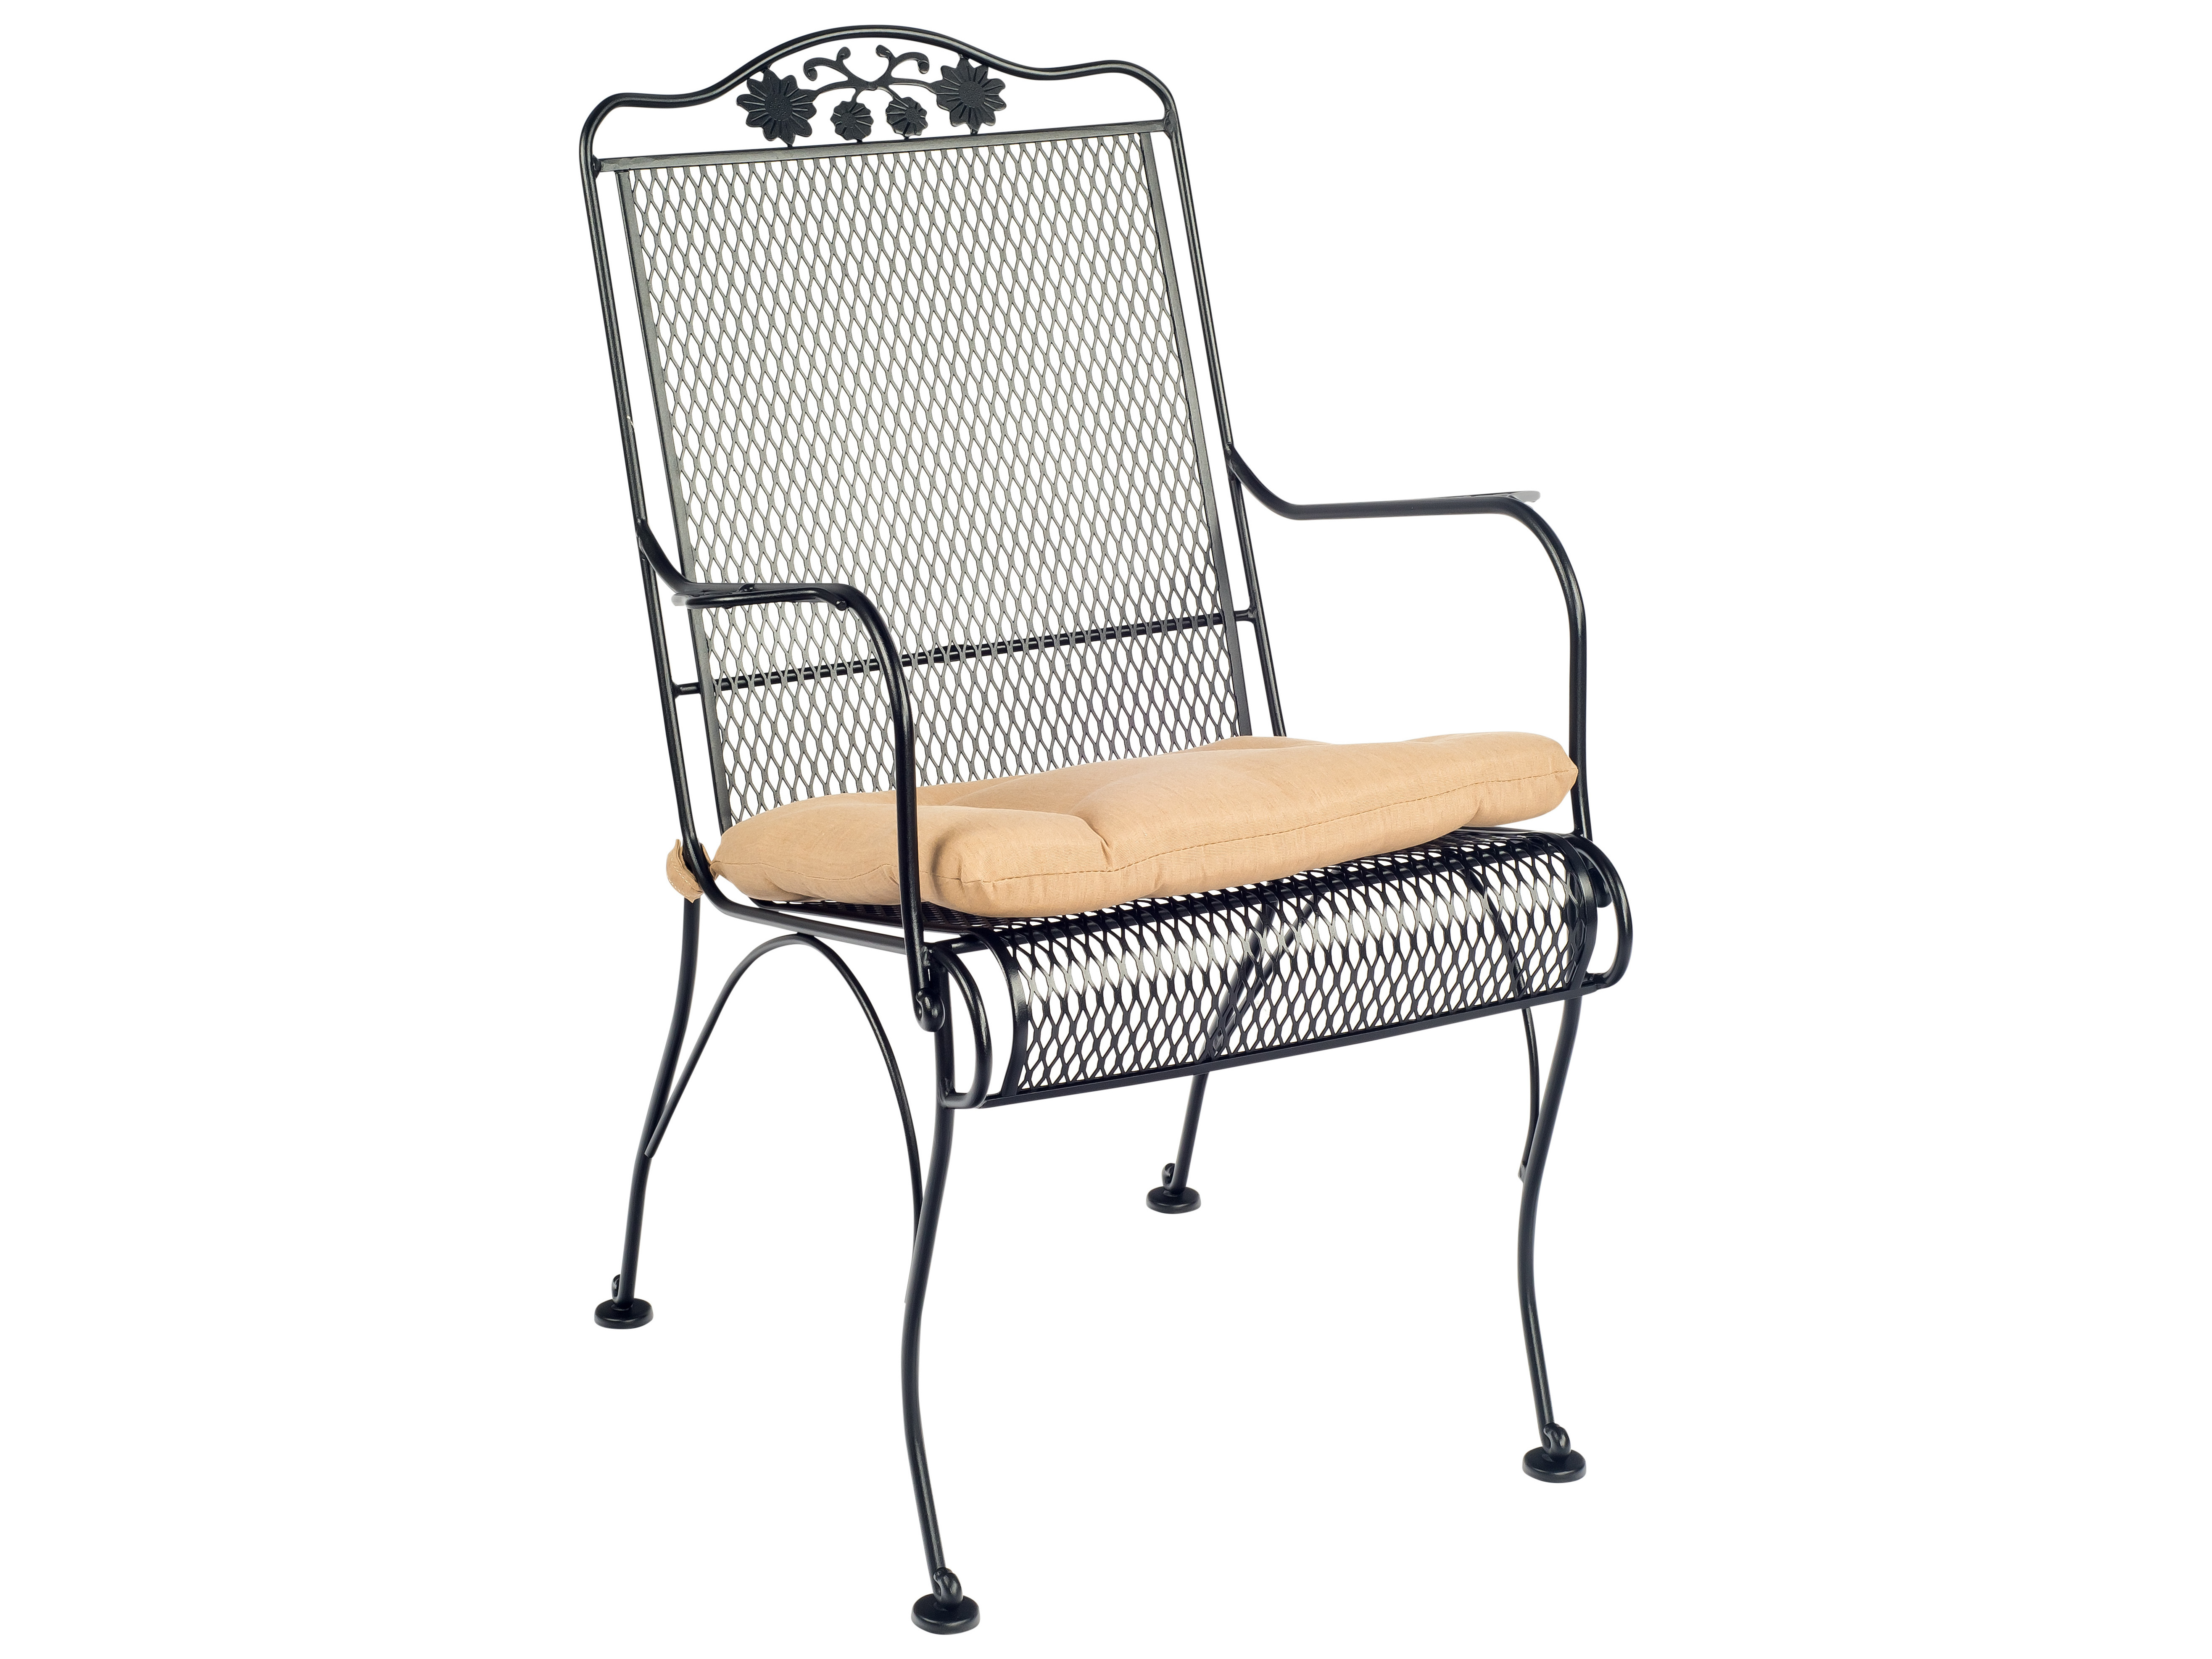 Woodard Briarwood Wrought Iron High Back Dining Arm Chair With Cushion Wr400001st